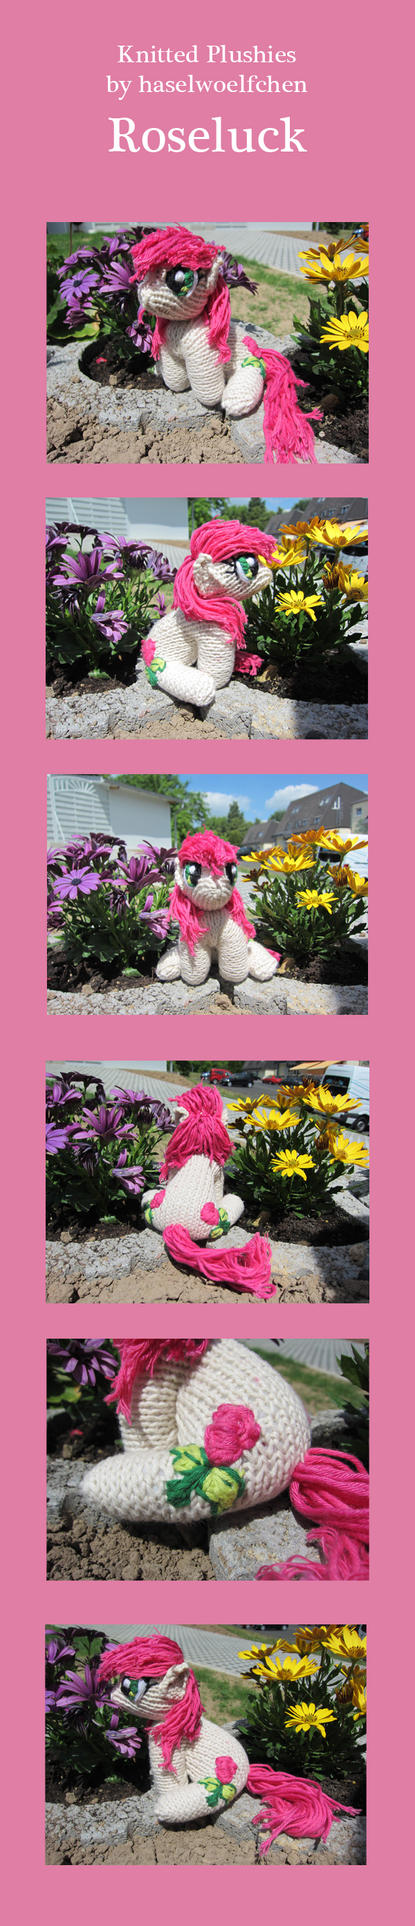 Knitted Plushies - Roseluck by haselwoelfchen